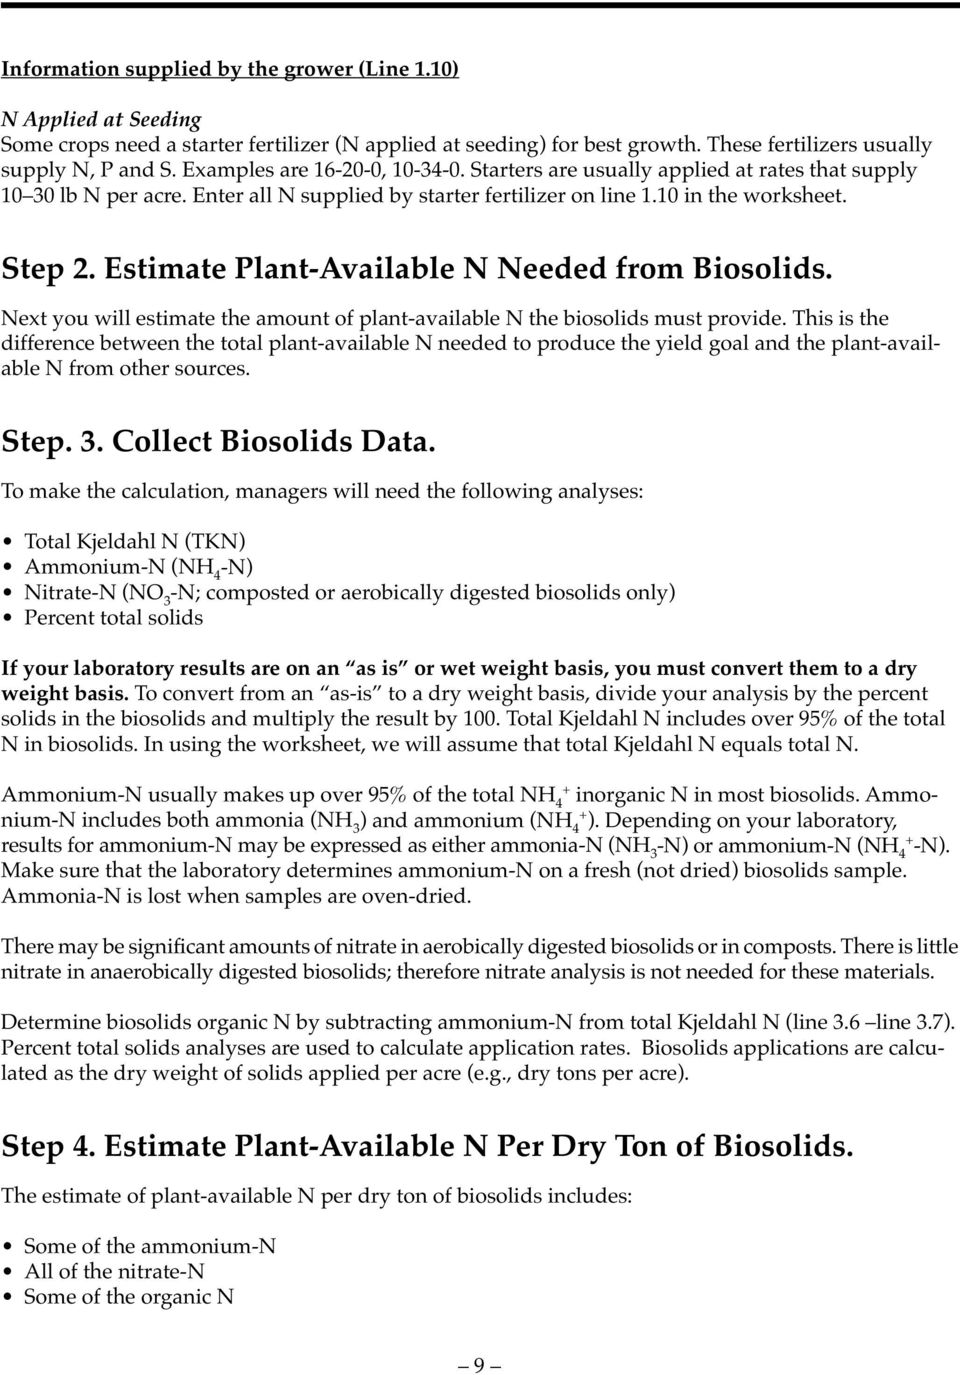 Adverb Worksheets Grade 3 Excel   Soil Texture Worksheet   Camalie Soils Reportjournal Of  Free Math Worksheets Pdf with Learning Letters Worksheets Pdf Soil Texture Worksheet Worksheet For Calculating Biosolids Application  Rates In Bible Stories Worksheets